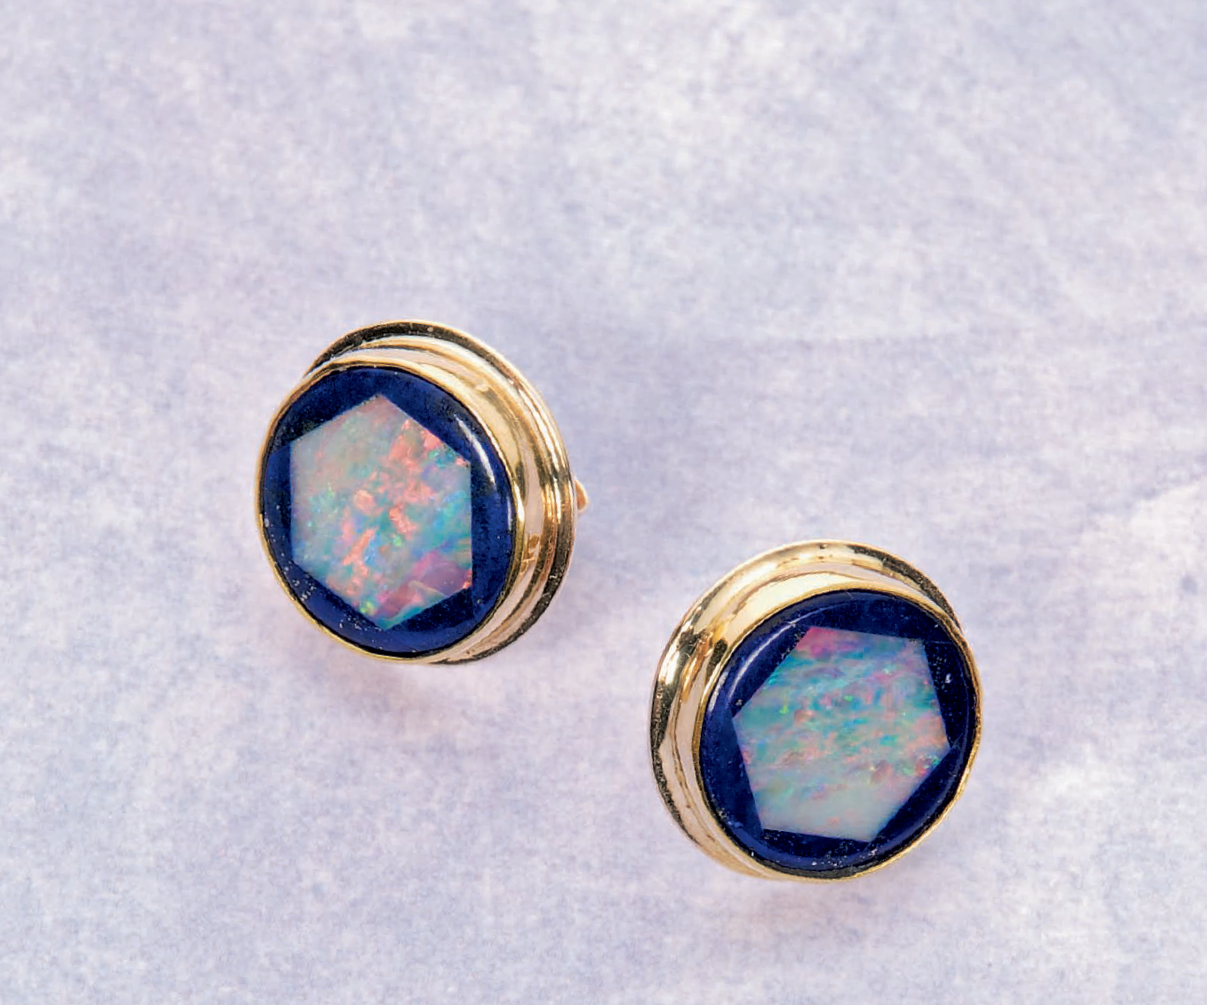 After every soldering operation, Tom and Kay Benham pickled the metal in these gold and opal earrings, which appear in Everyone's Guide to How to Solder Jewelry; photo: Jim Lawson